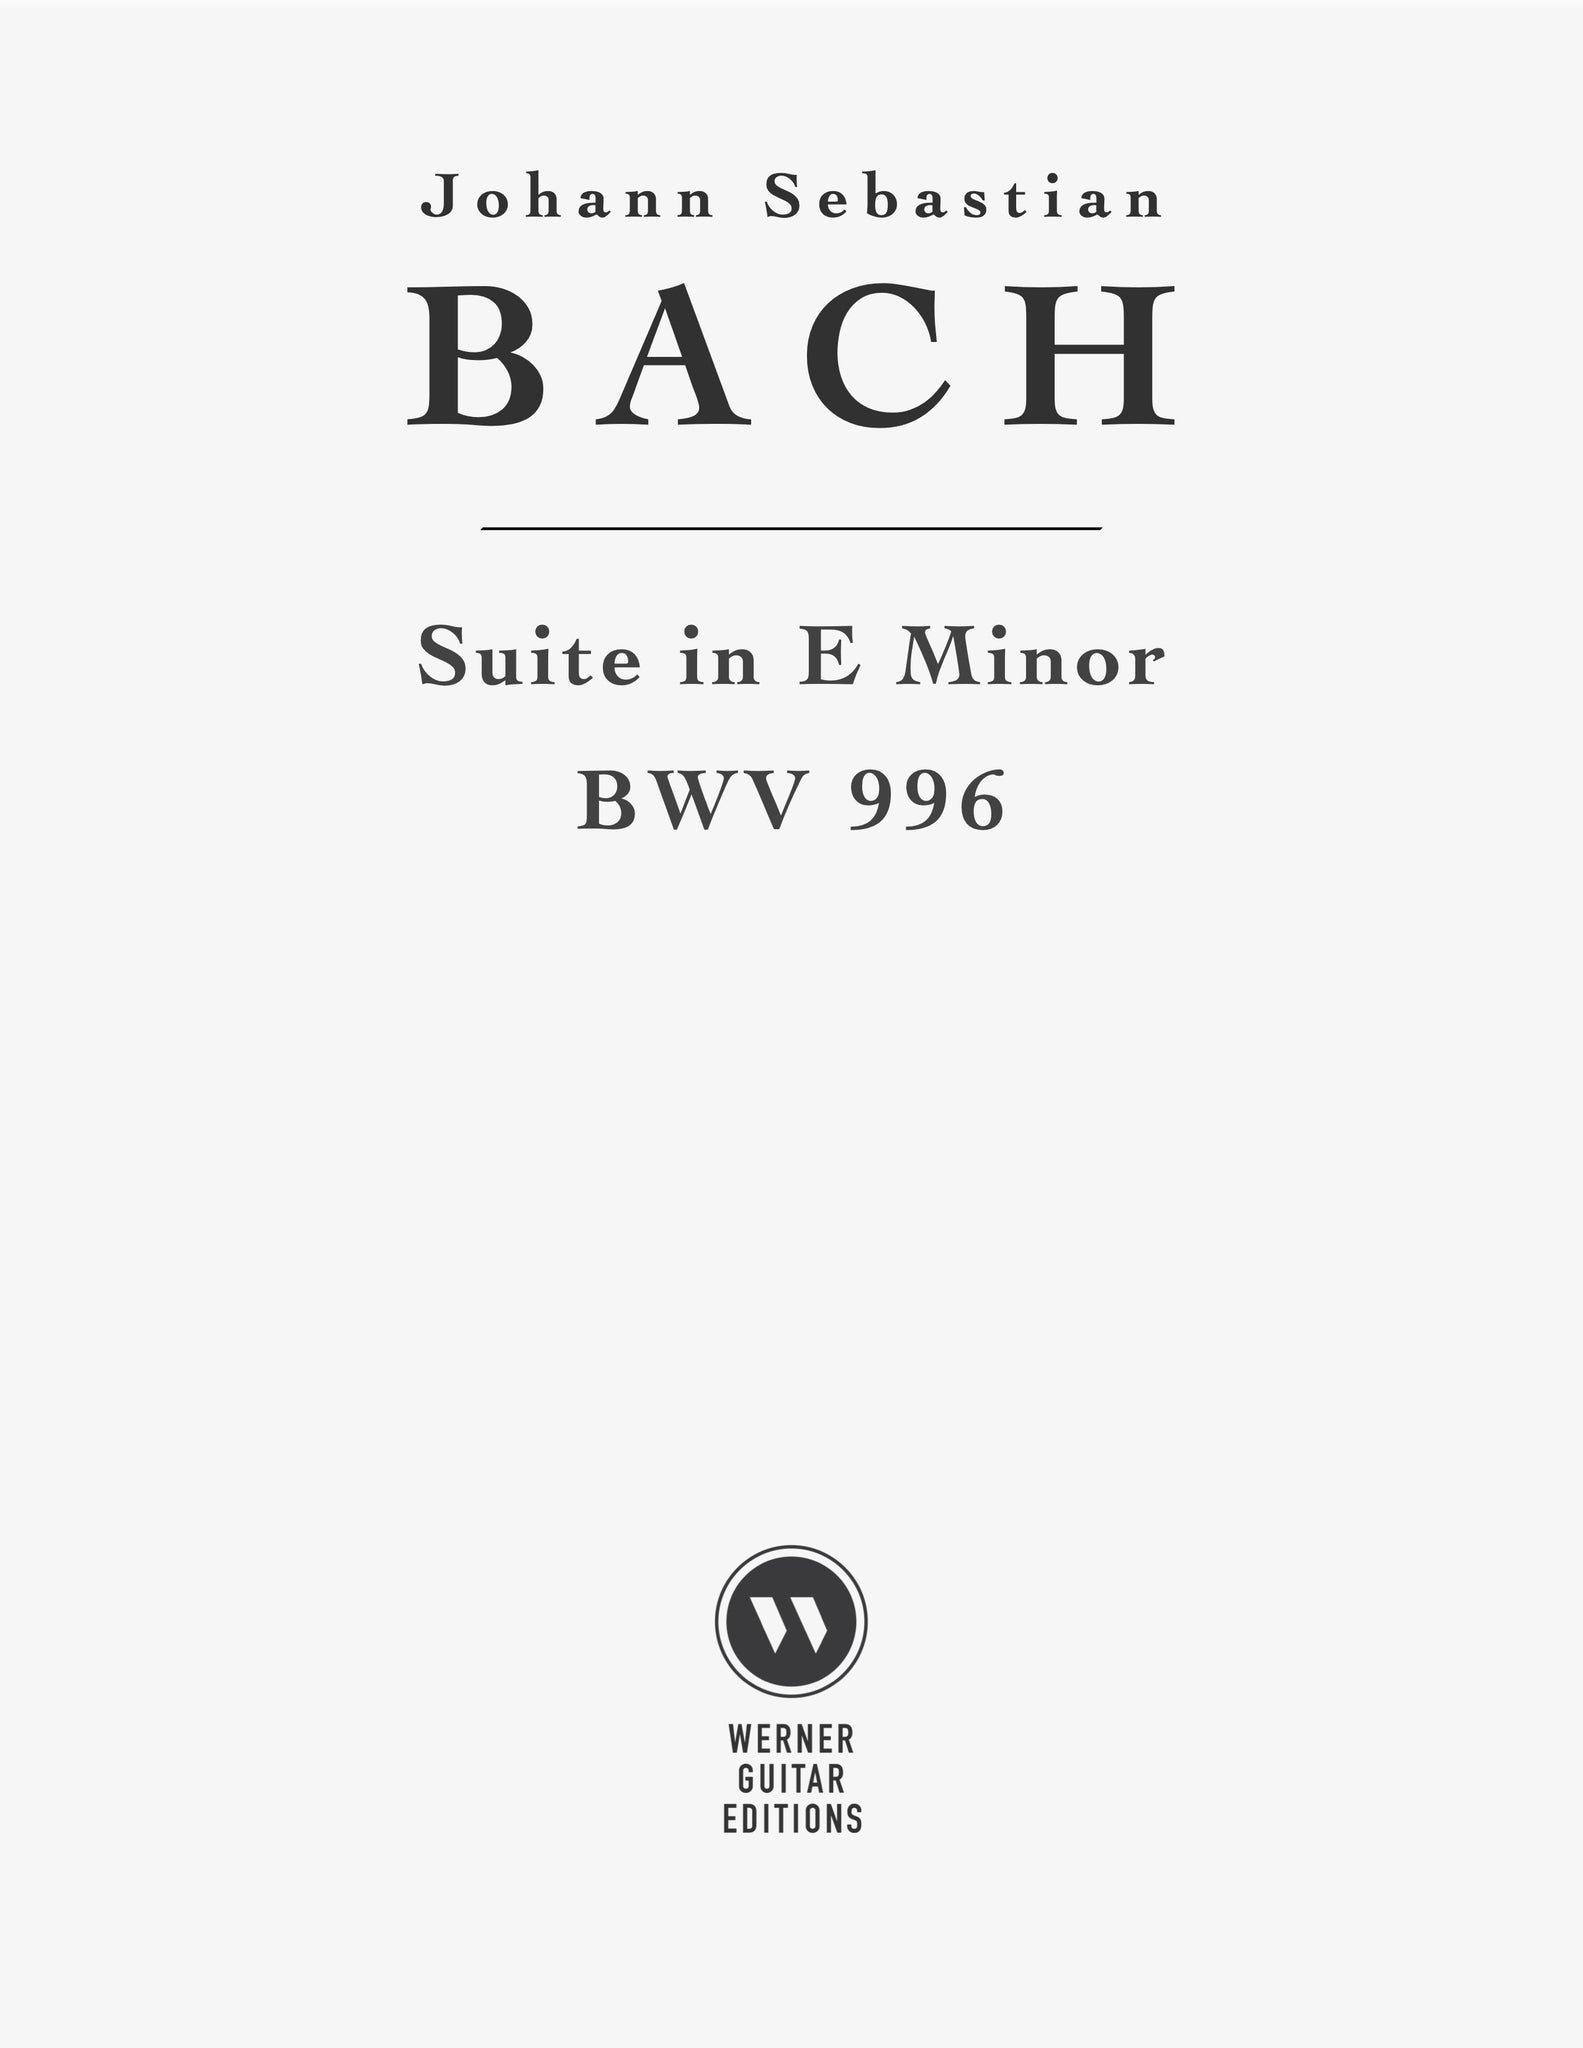 Lute Suite in E Minor BWV 996 by Bach for Classical Guitar (PDF)